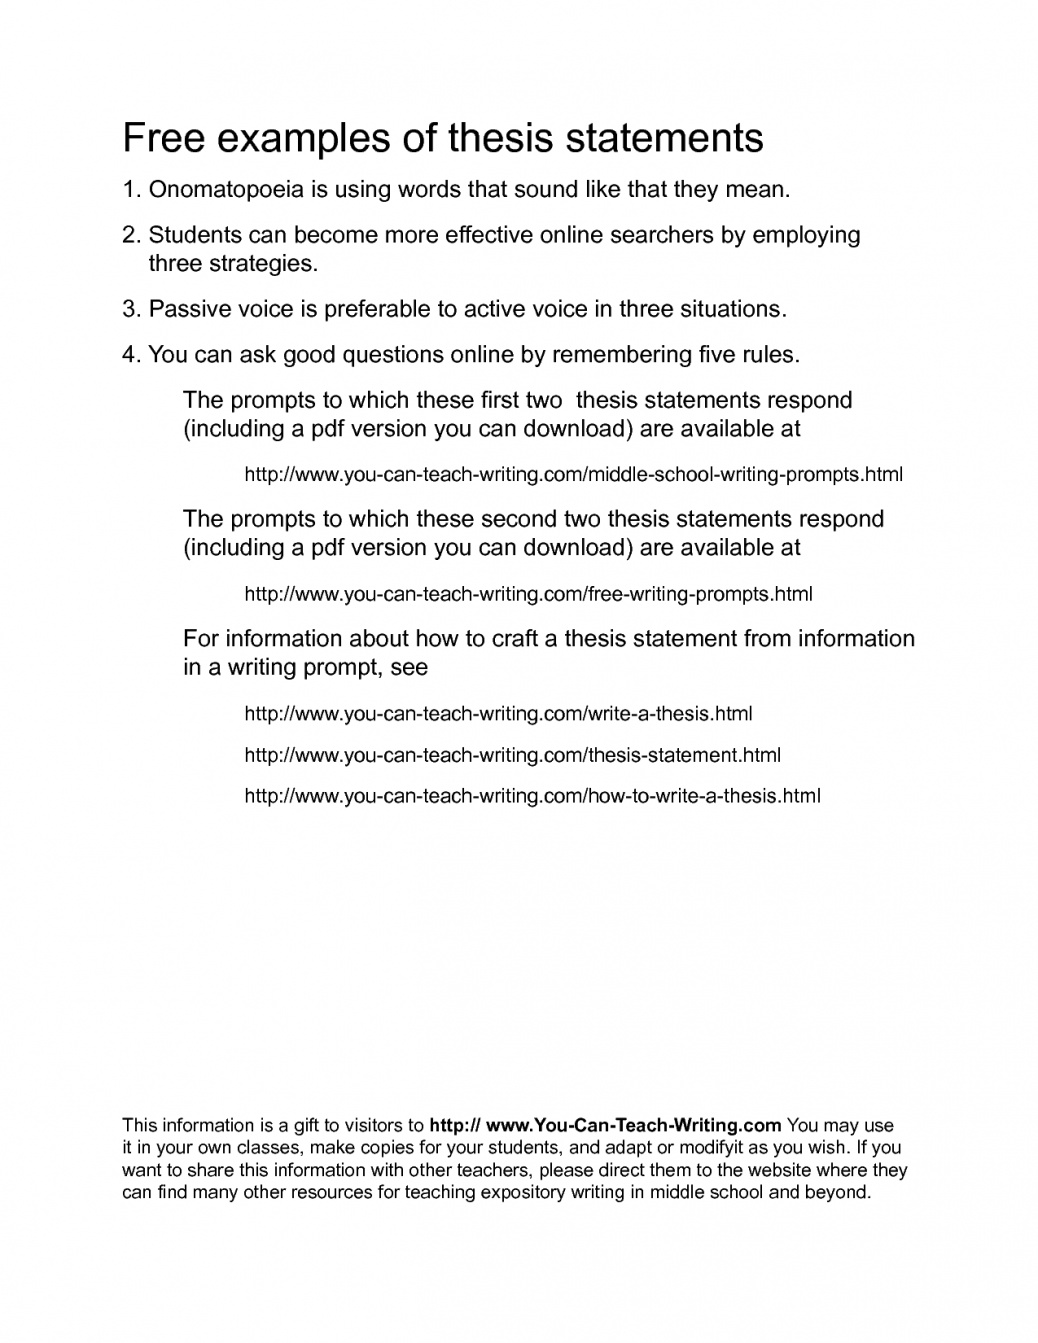 Reflective Essay Thesis  Essay Sample For High School also Health Insurance Essay  Purpose Of Thesis Statement Template Wwetrpug Good  Essay On Science And Religion